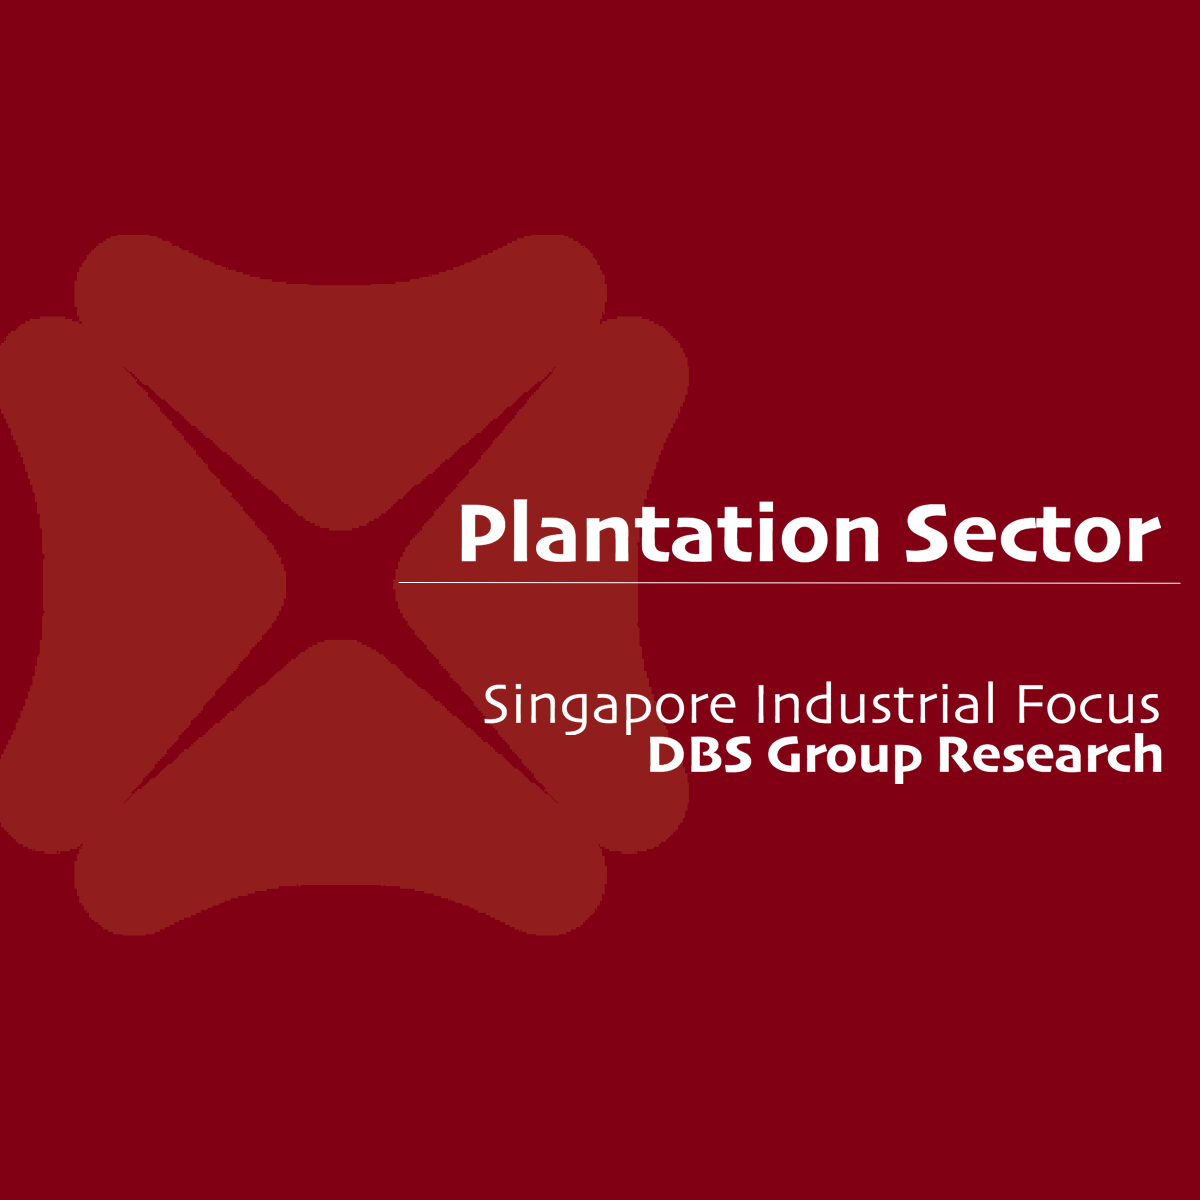 Plantation Companies - DBS Vickers 2017-04-11: Temporary demand weakness